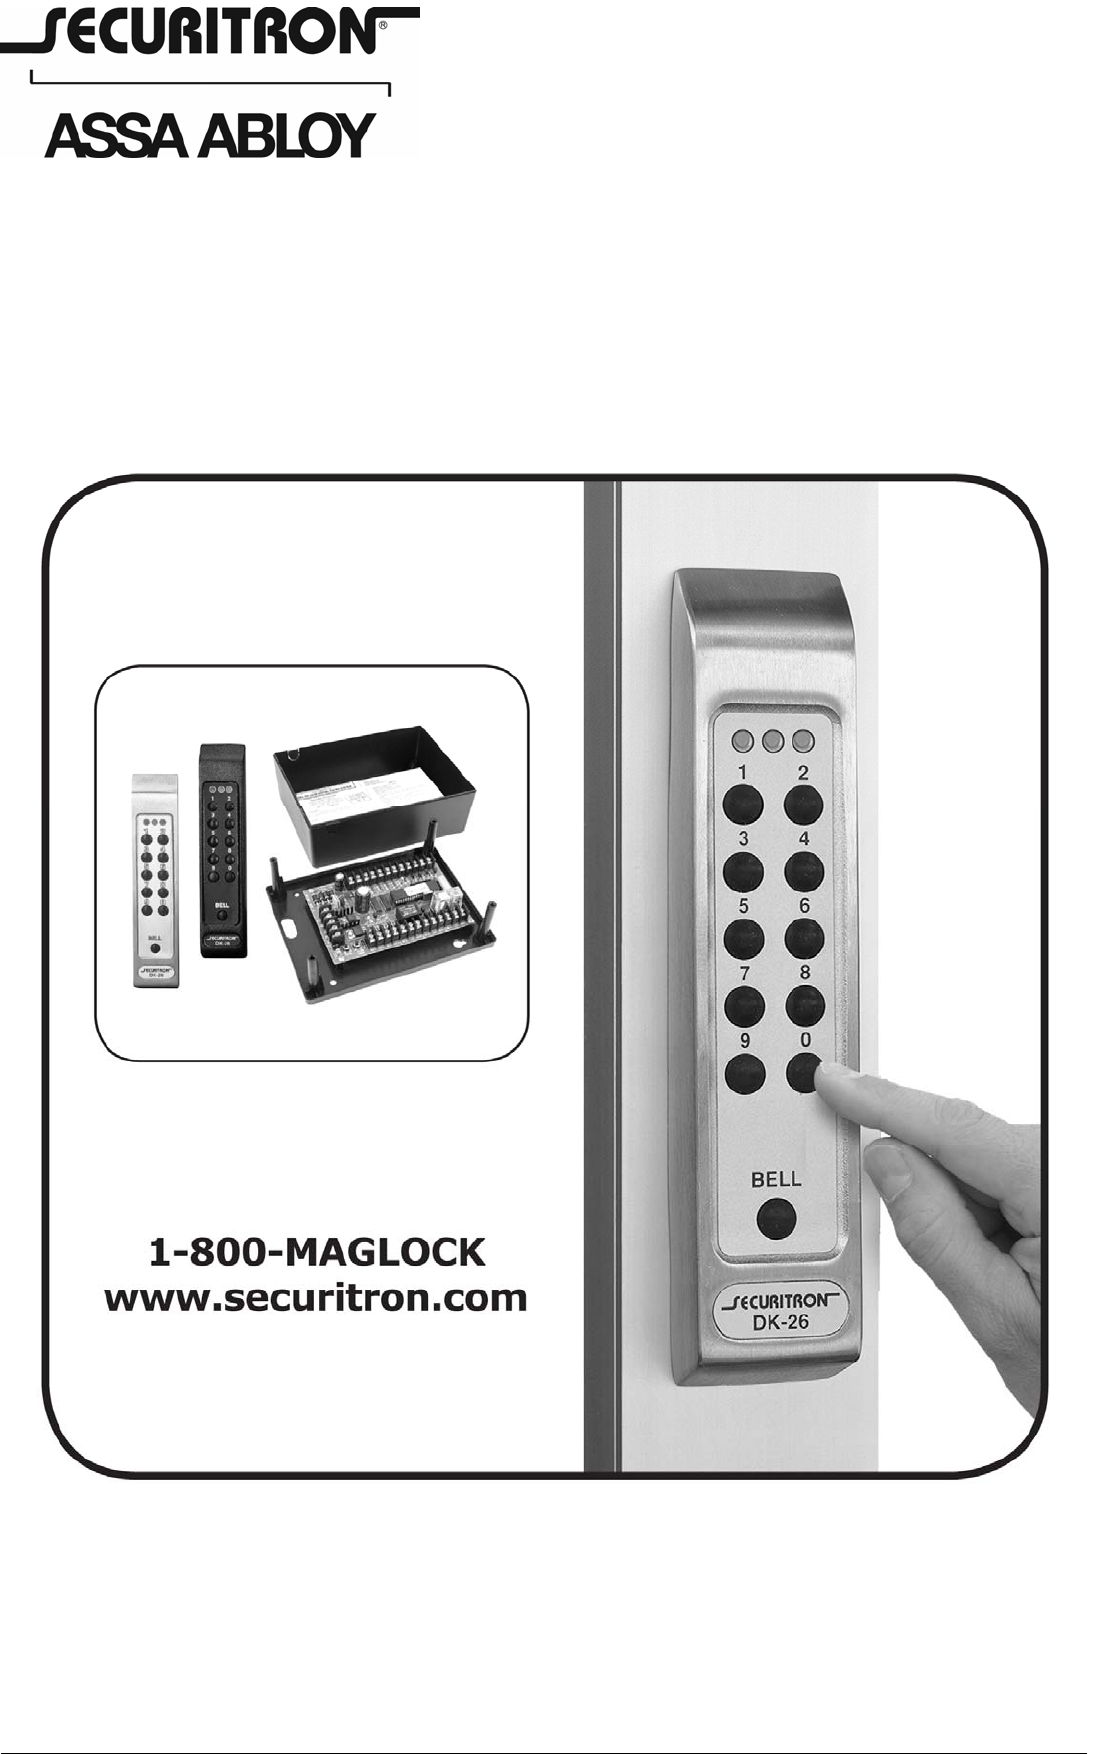 Securitron DK26 500 16900_D DK 26 Installation And Operating ... on m32 maglock, 600-pound maglock, double maglock, for sliding door maglock, wiring a maglock, side mount maglock,